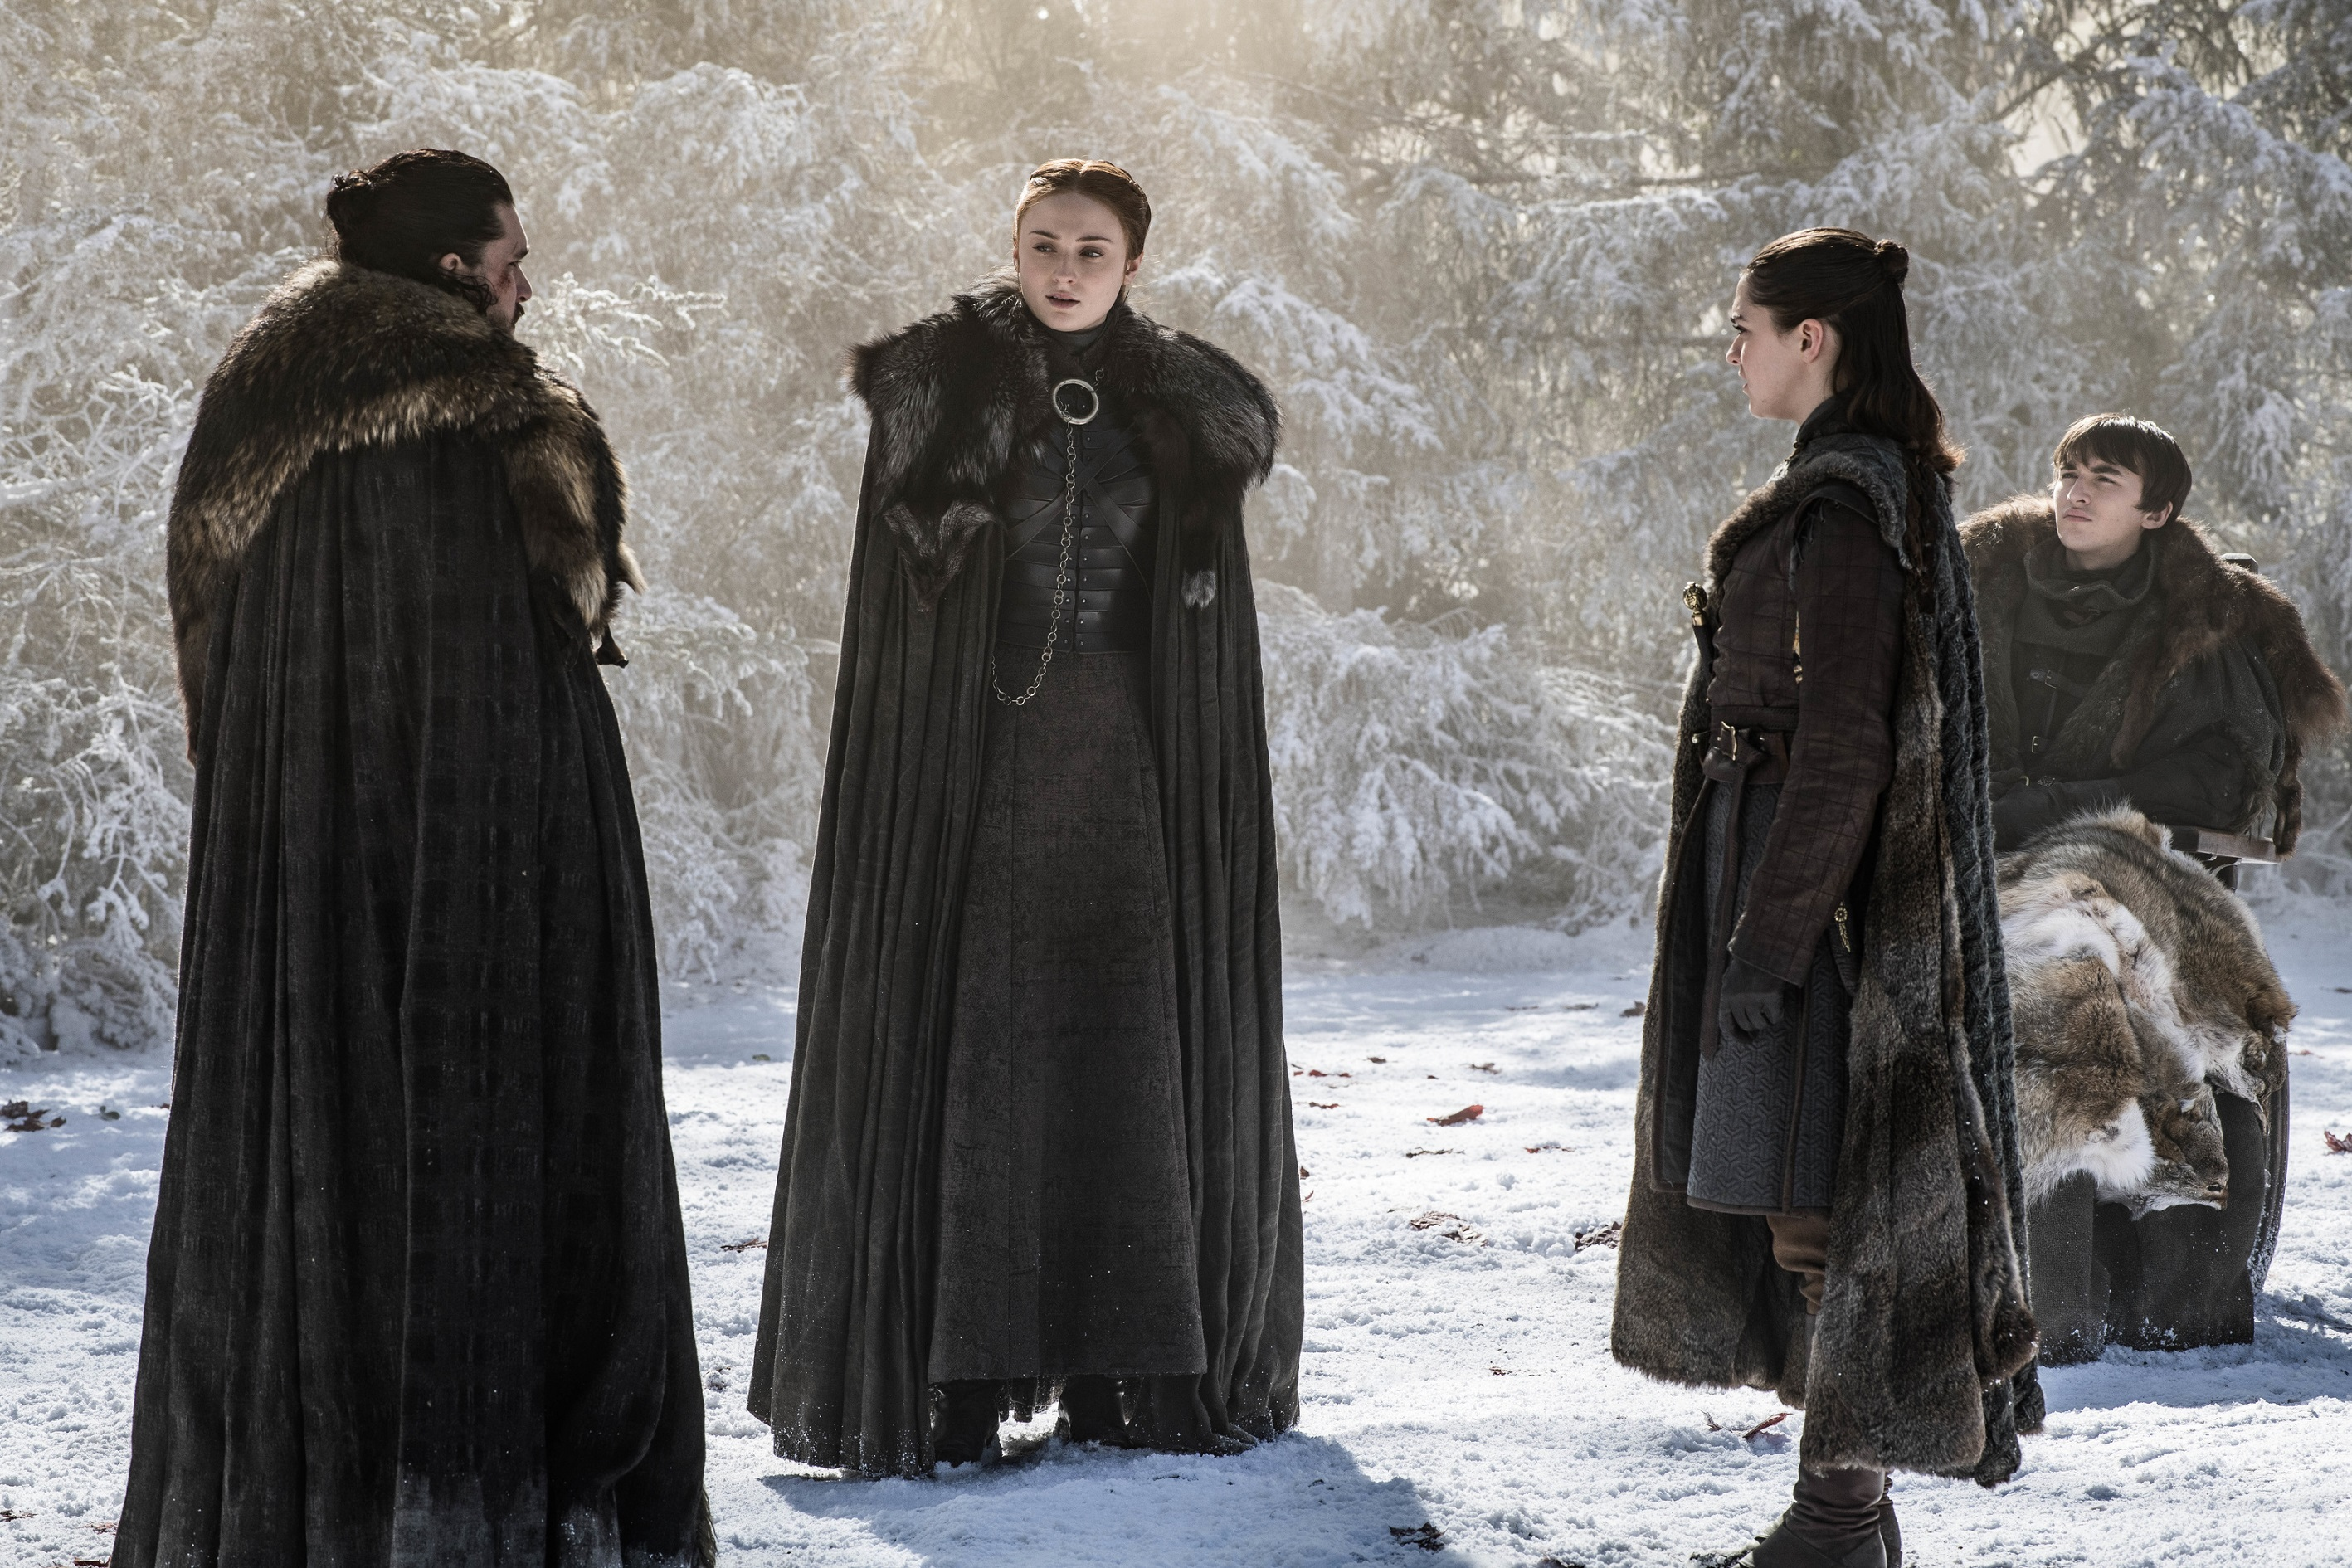 cff8d224 Game of Thrones Season 8 Episode 4